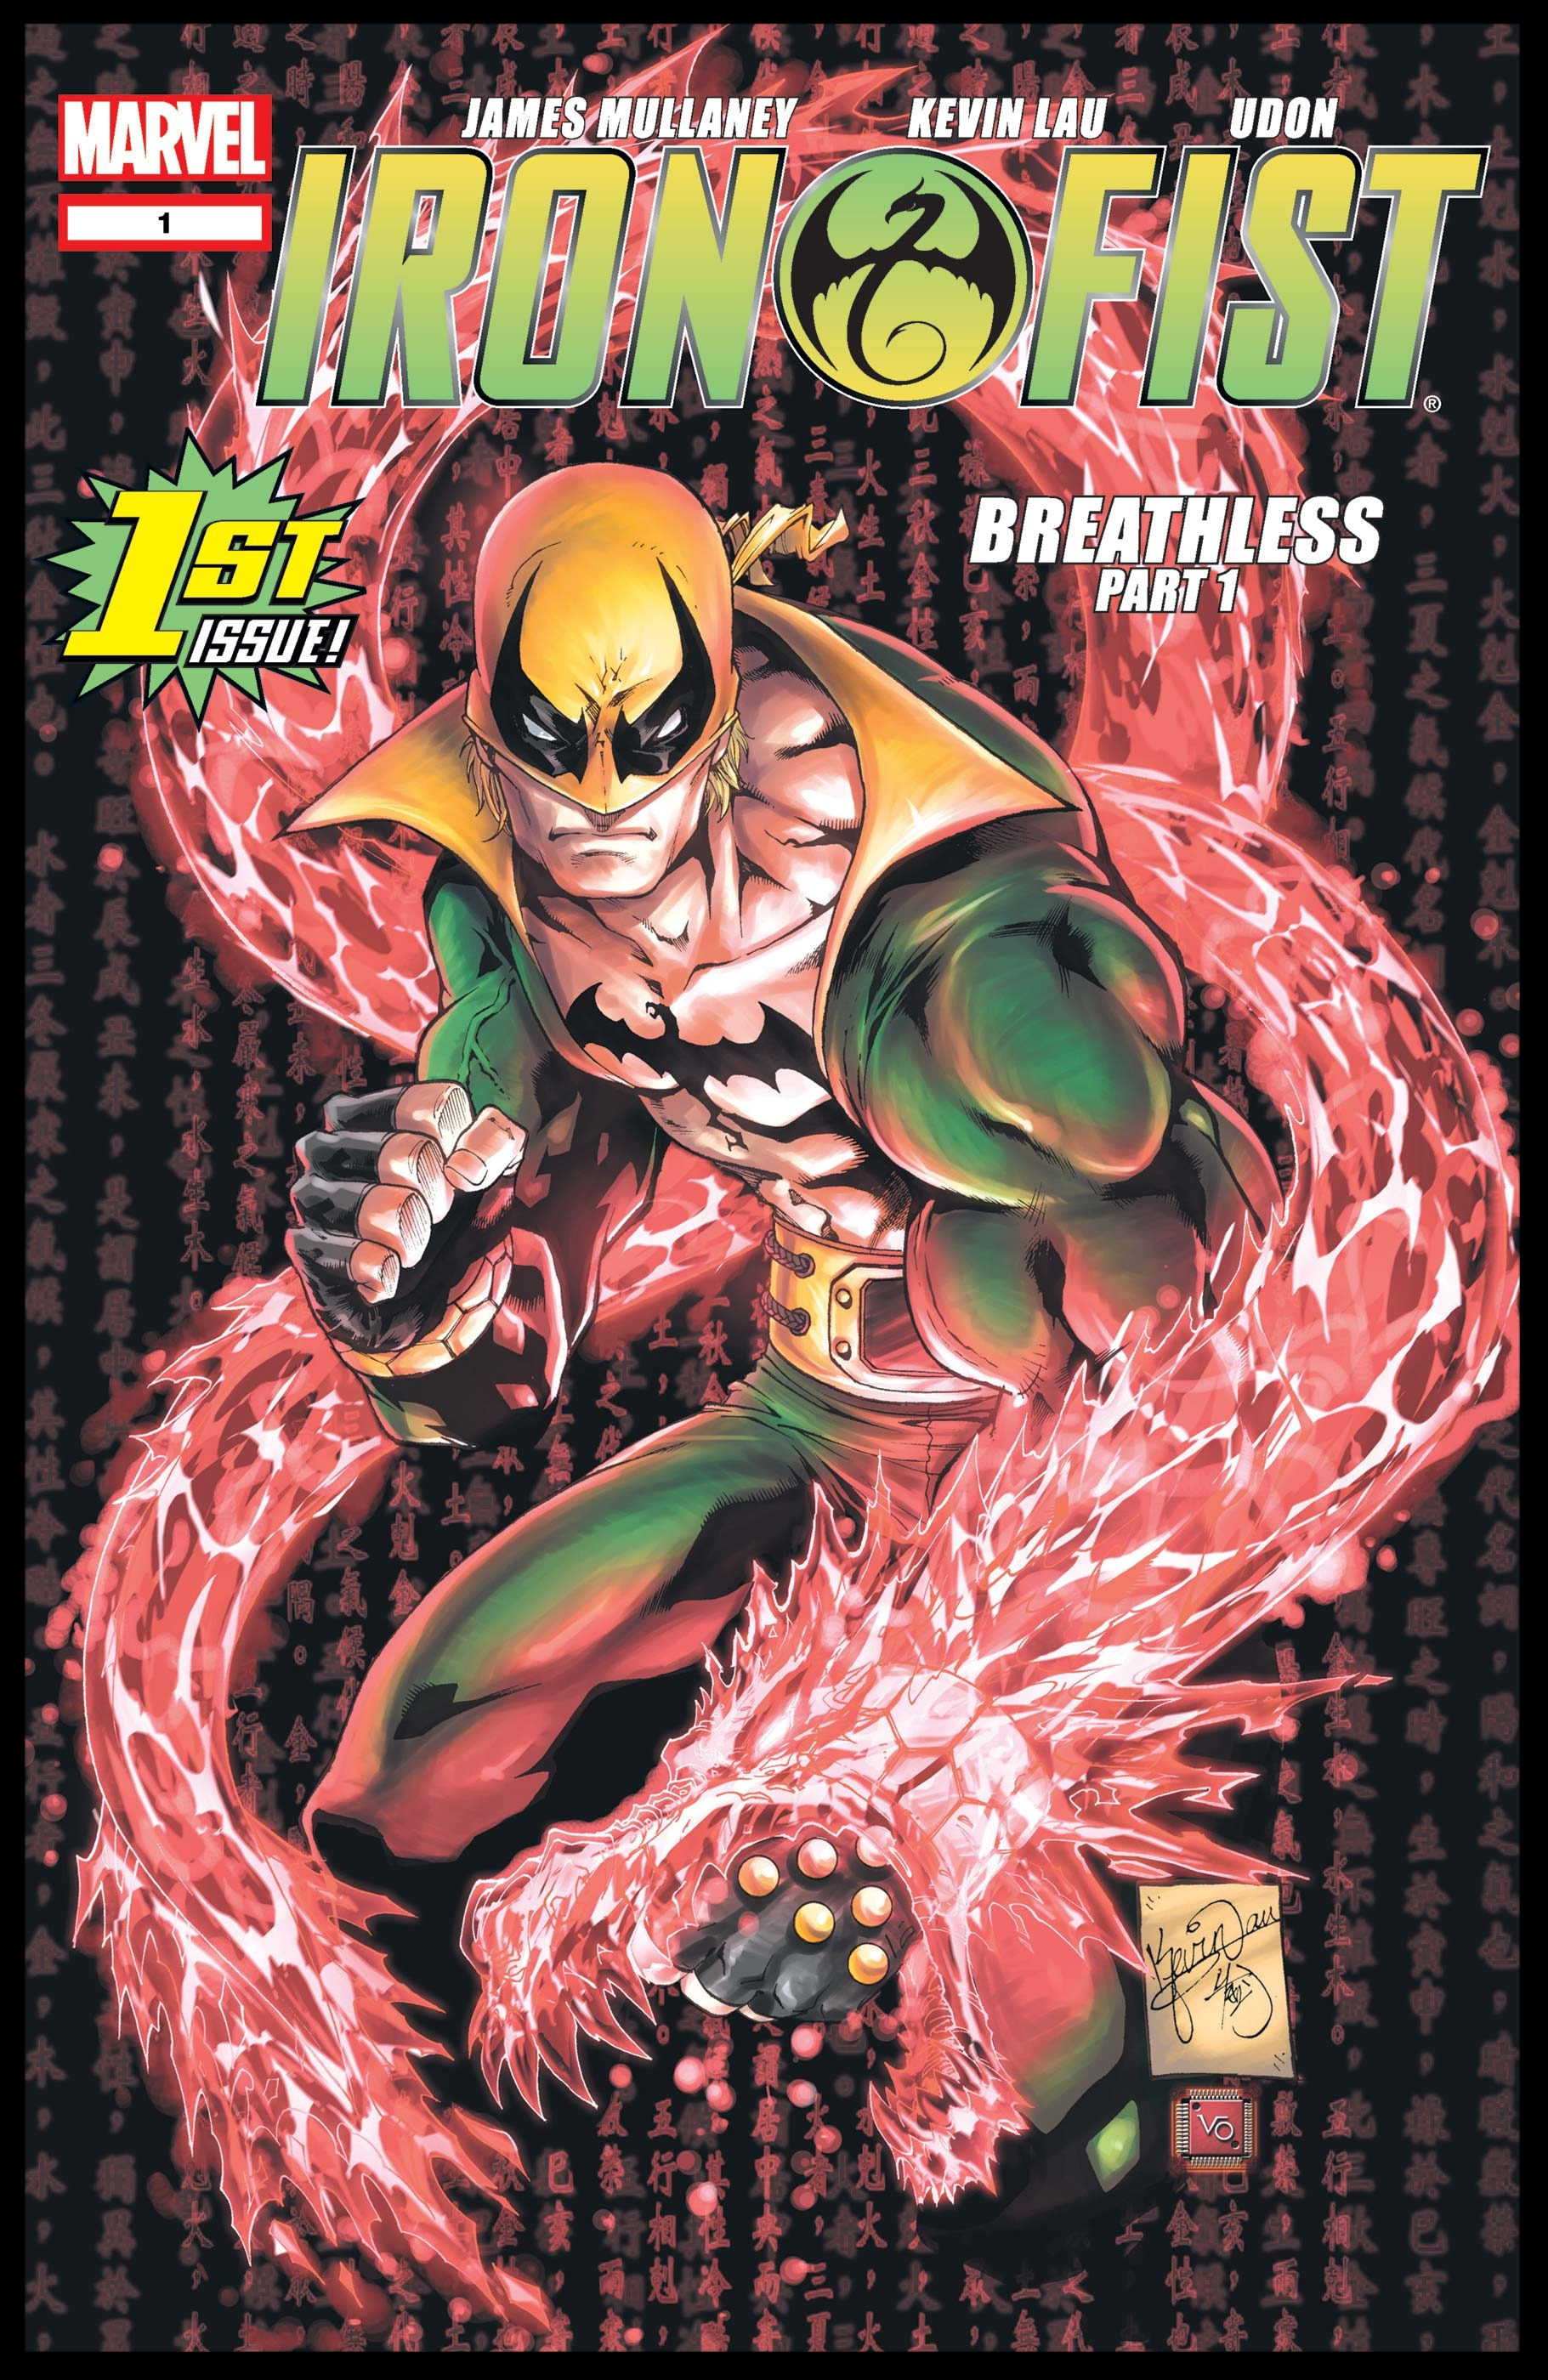 Iron Fist (2004) #1 Cover